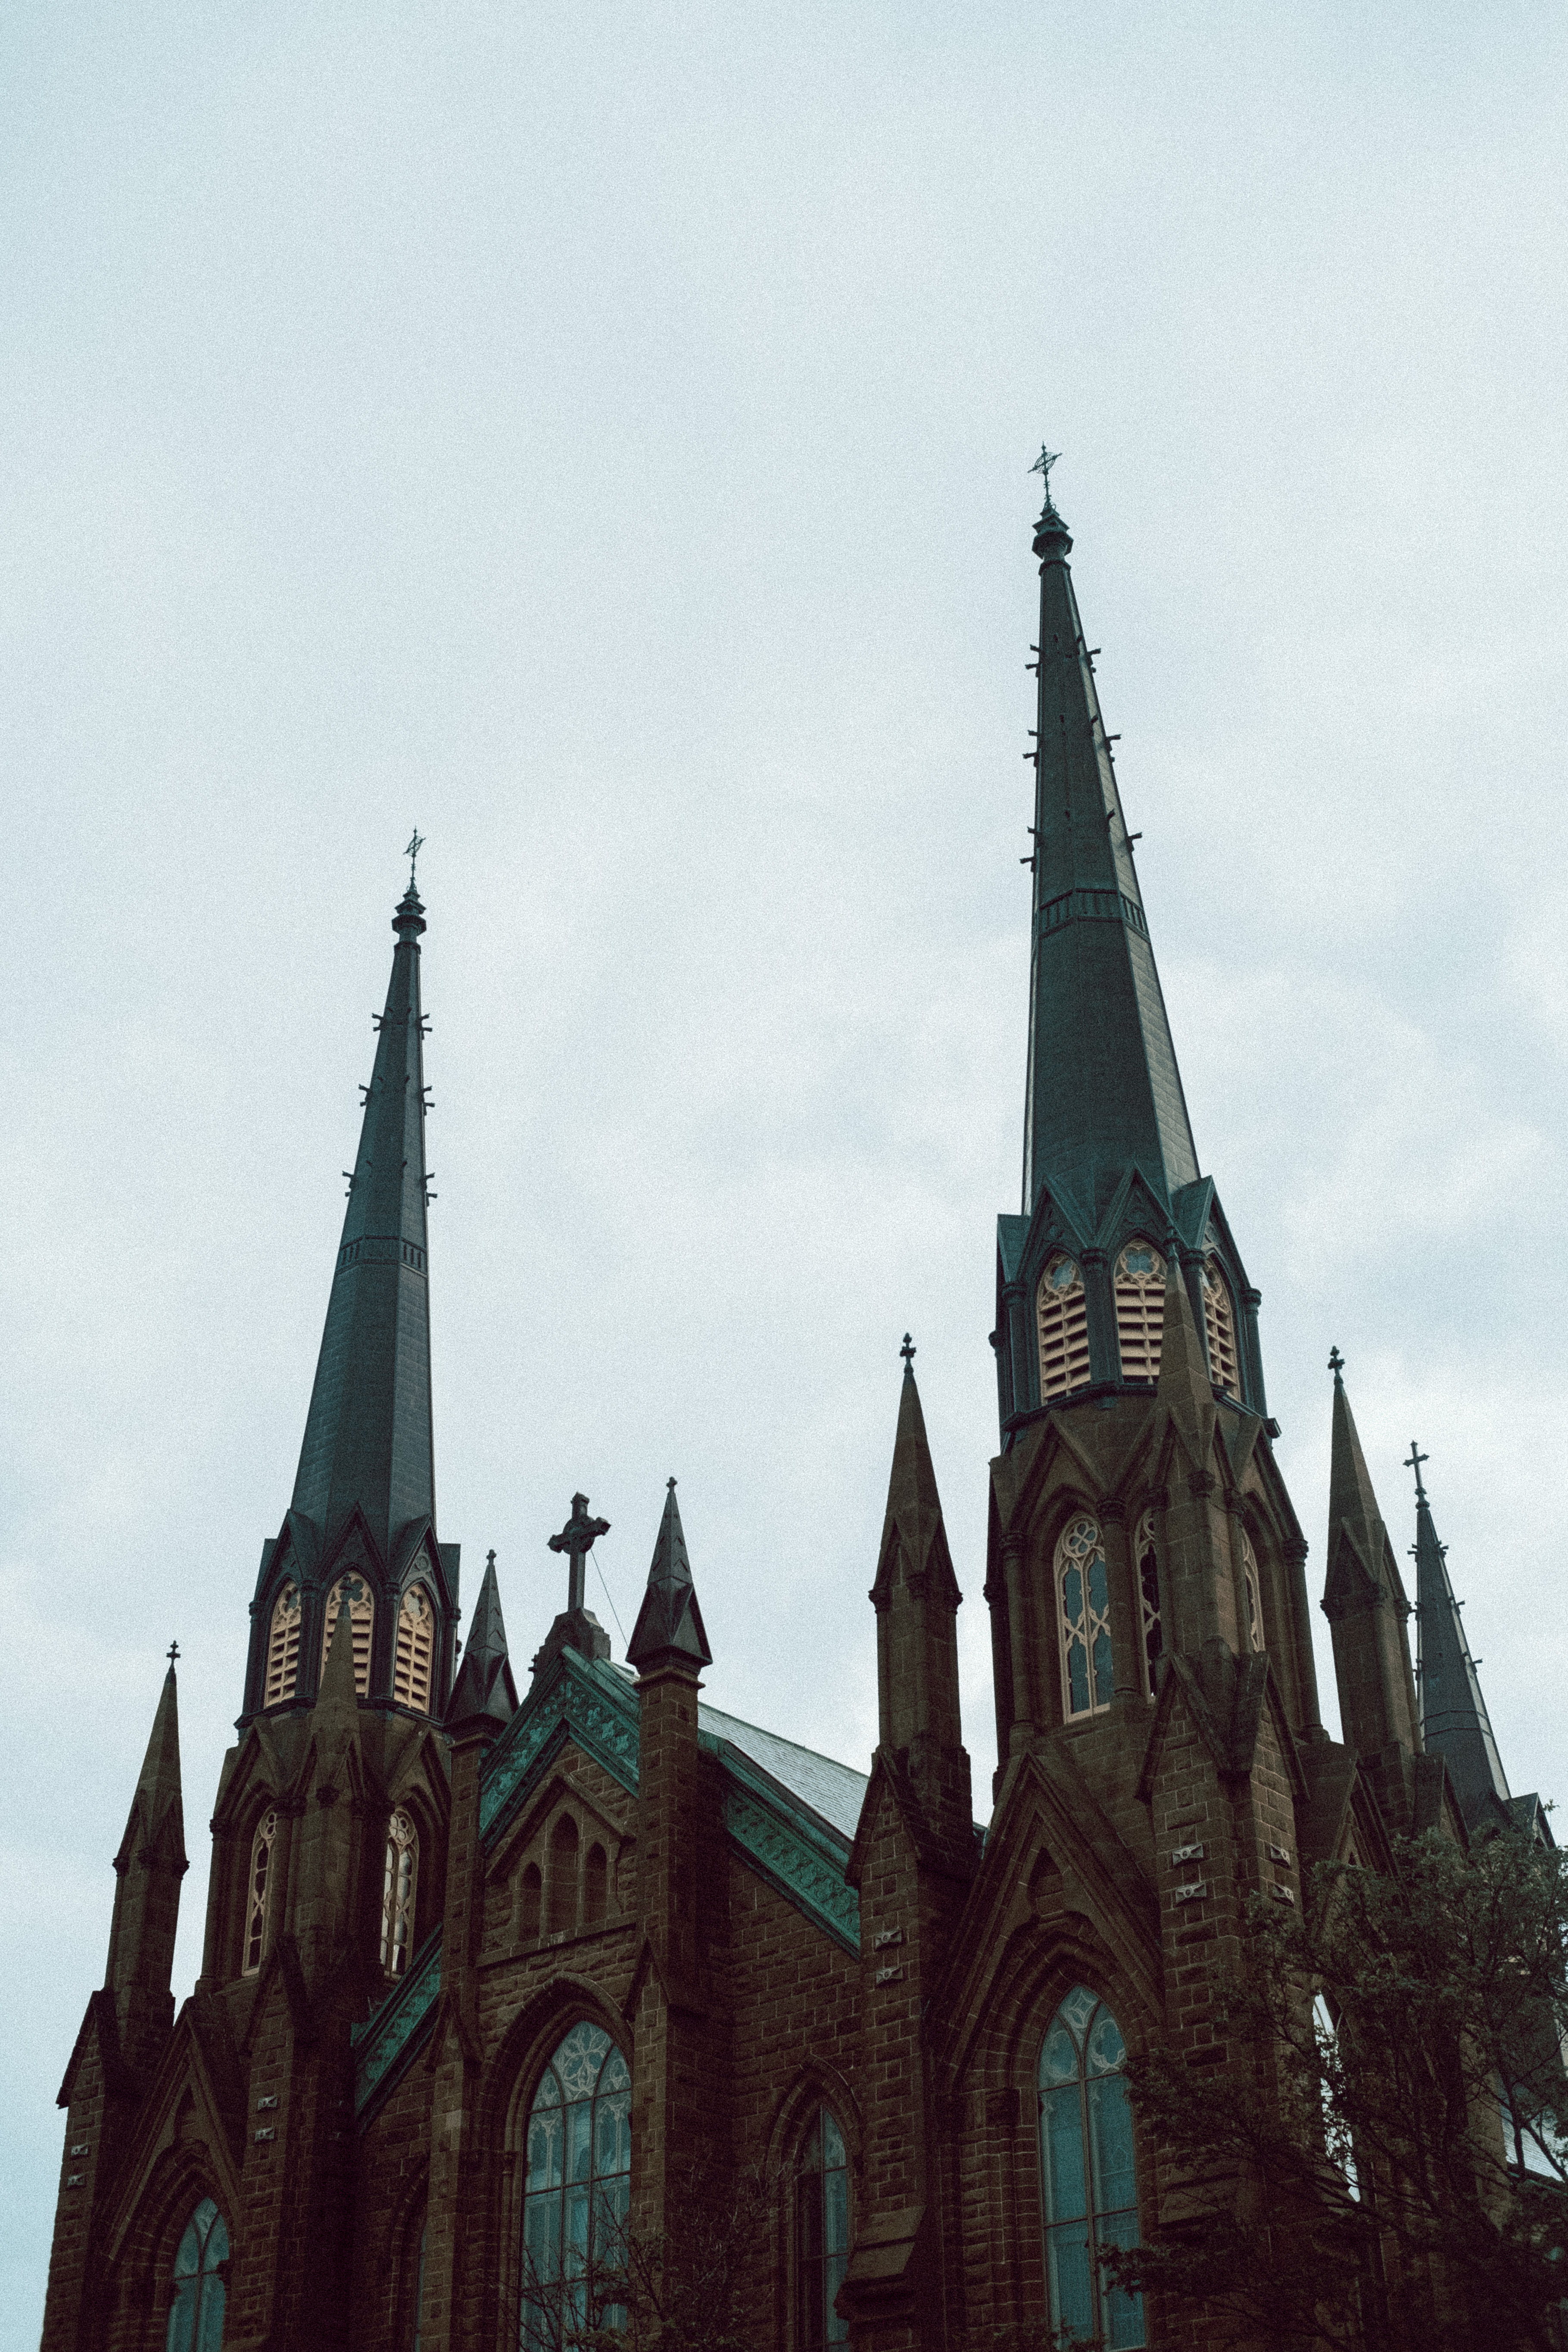 PEI Cathedral Steeples